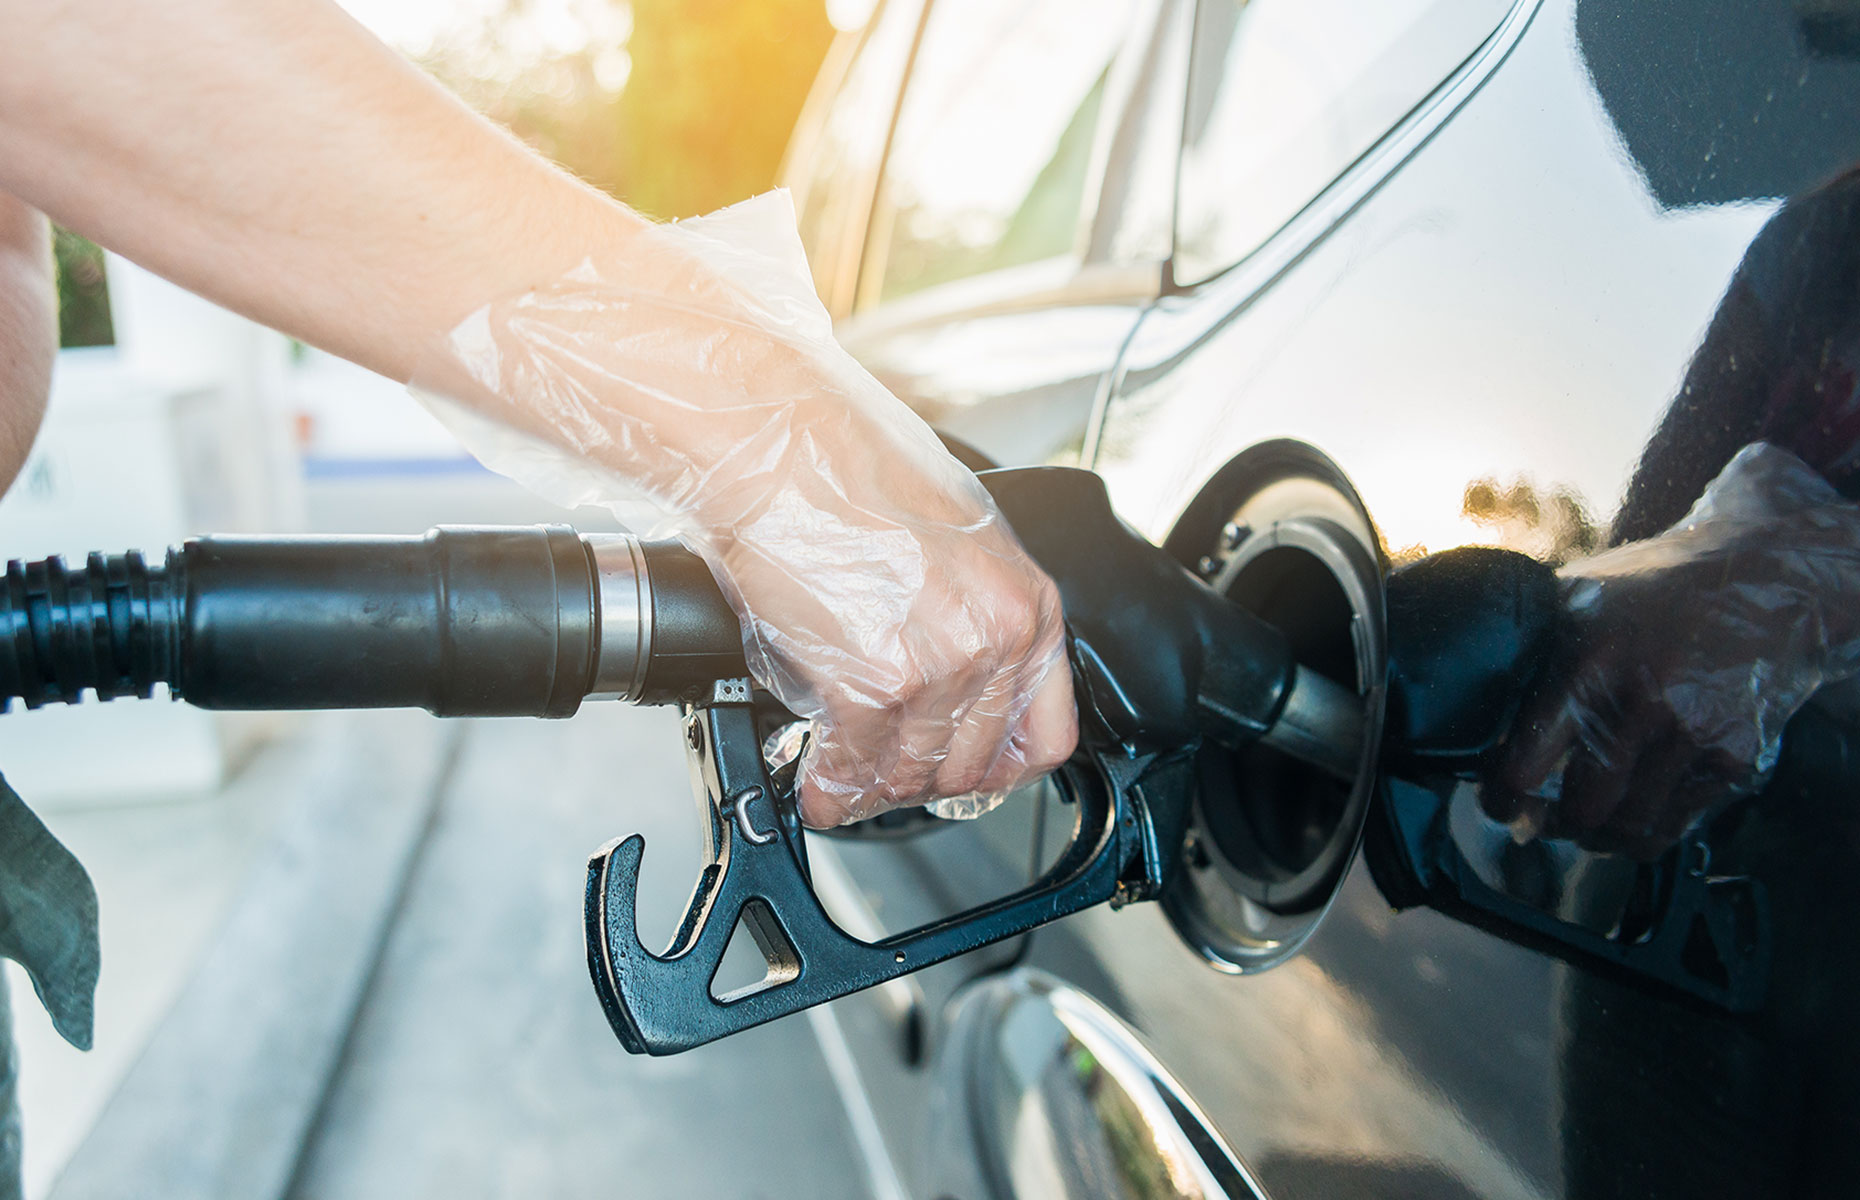 Wear gloves at the gas station. (Image: Fotoeventis/Shutterstock)